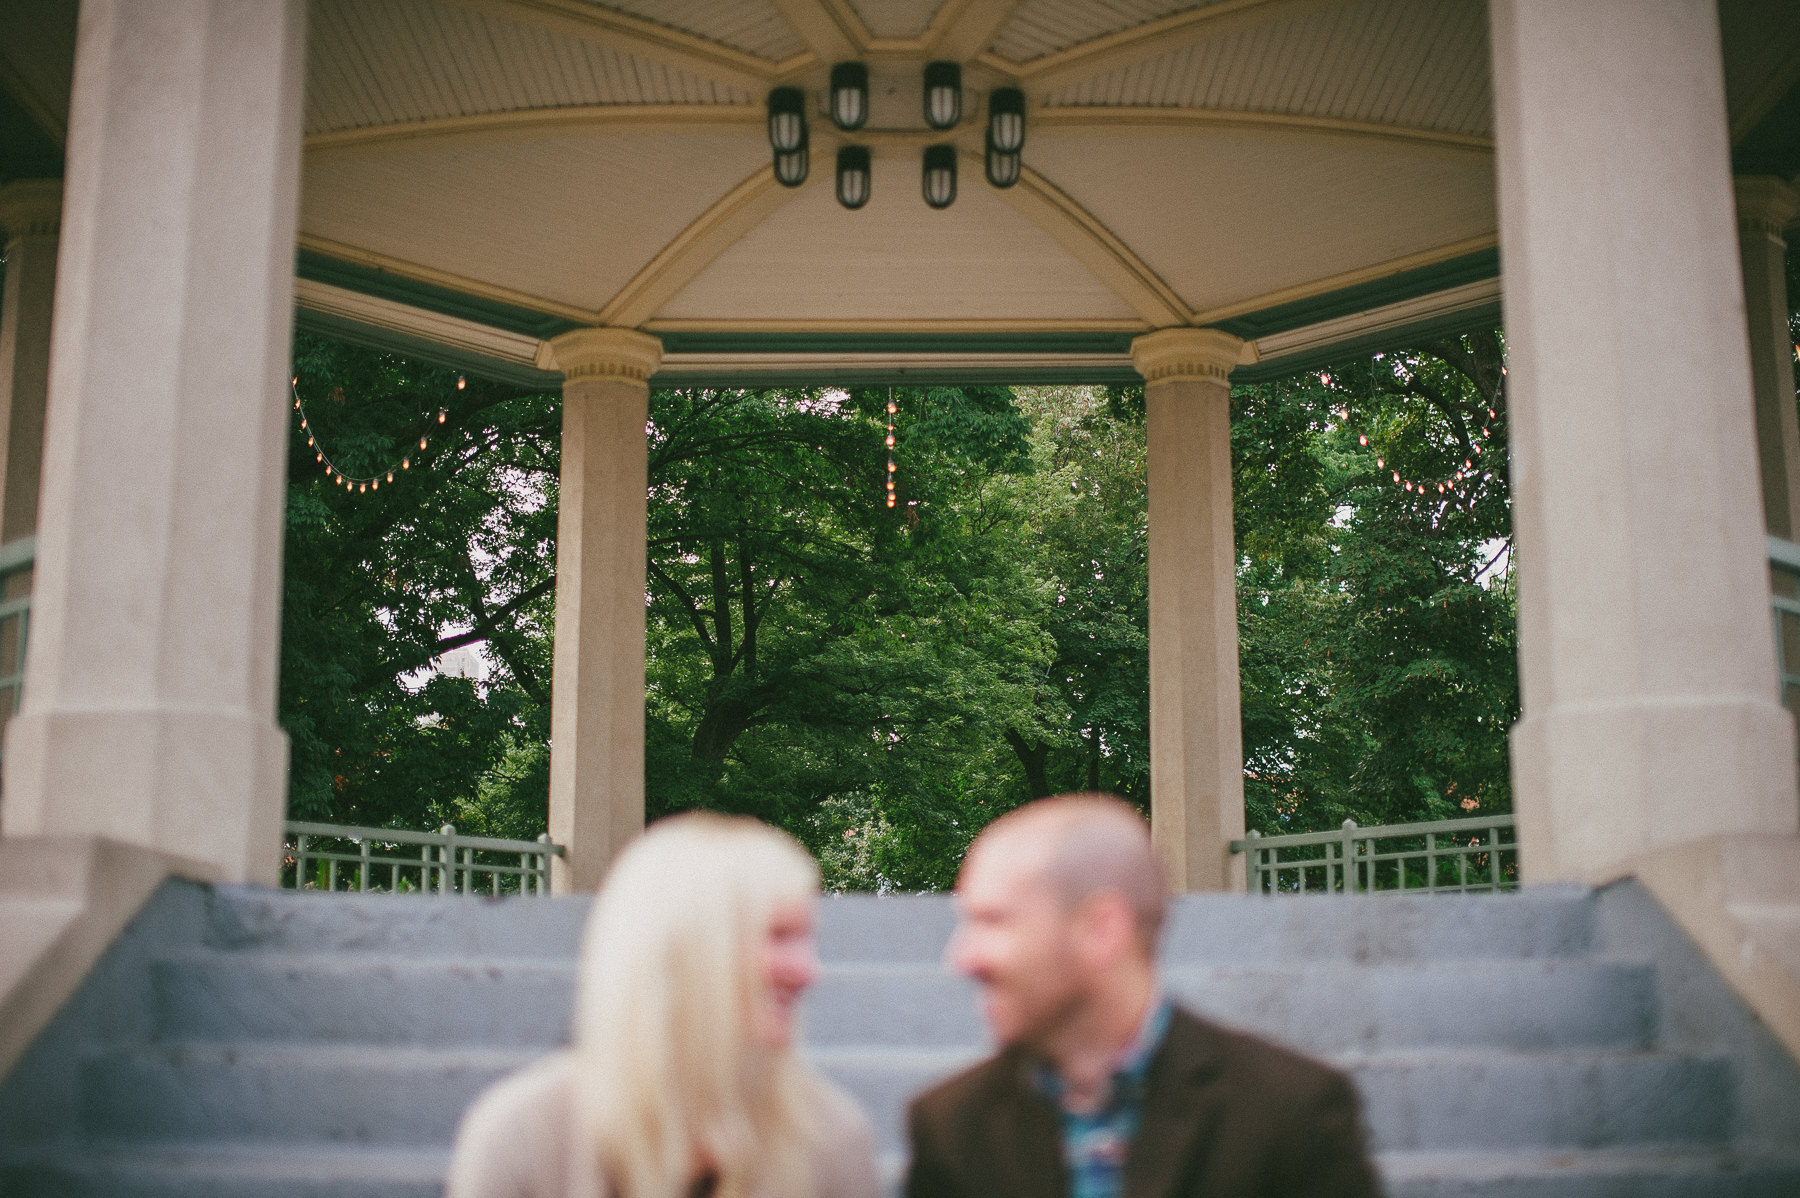 breighton-and-basette-photography-copyrighted-image-blog-emily-and-dave-engagement-002.jpg